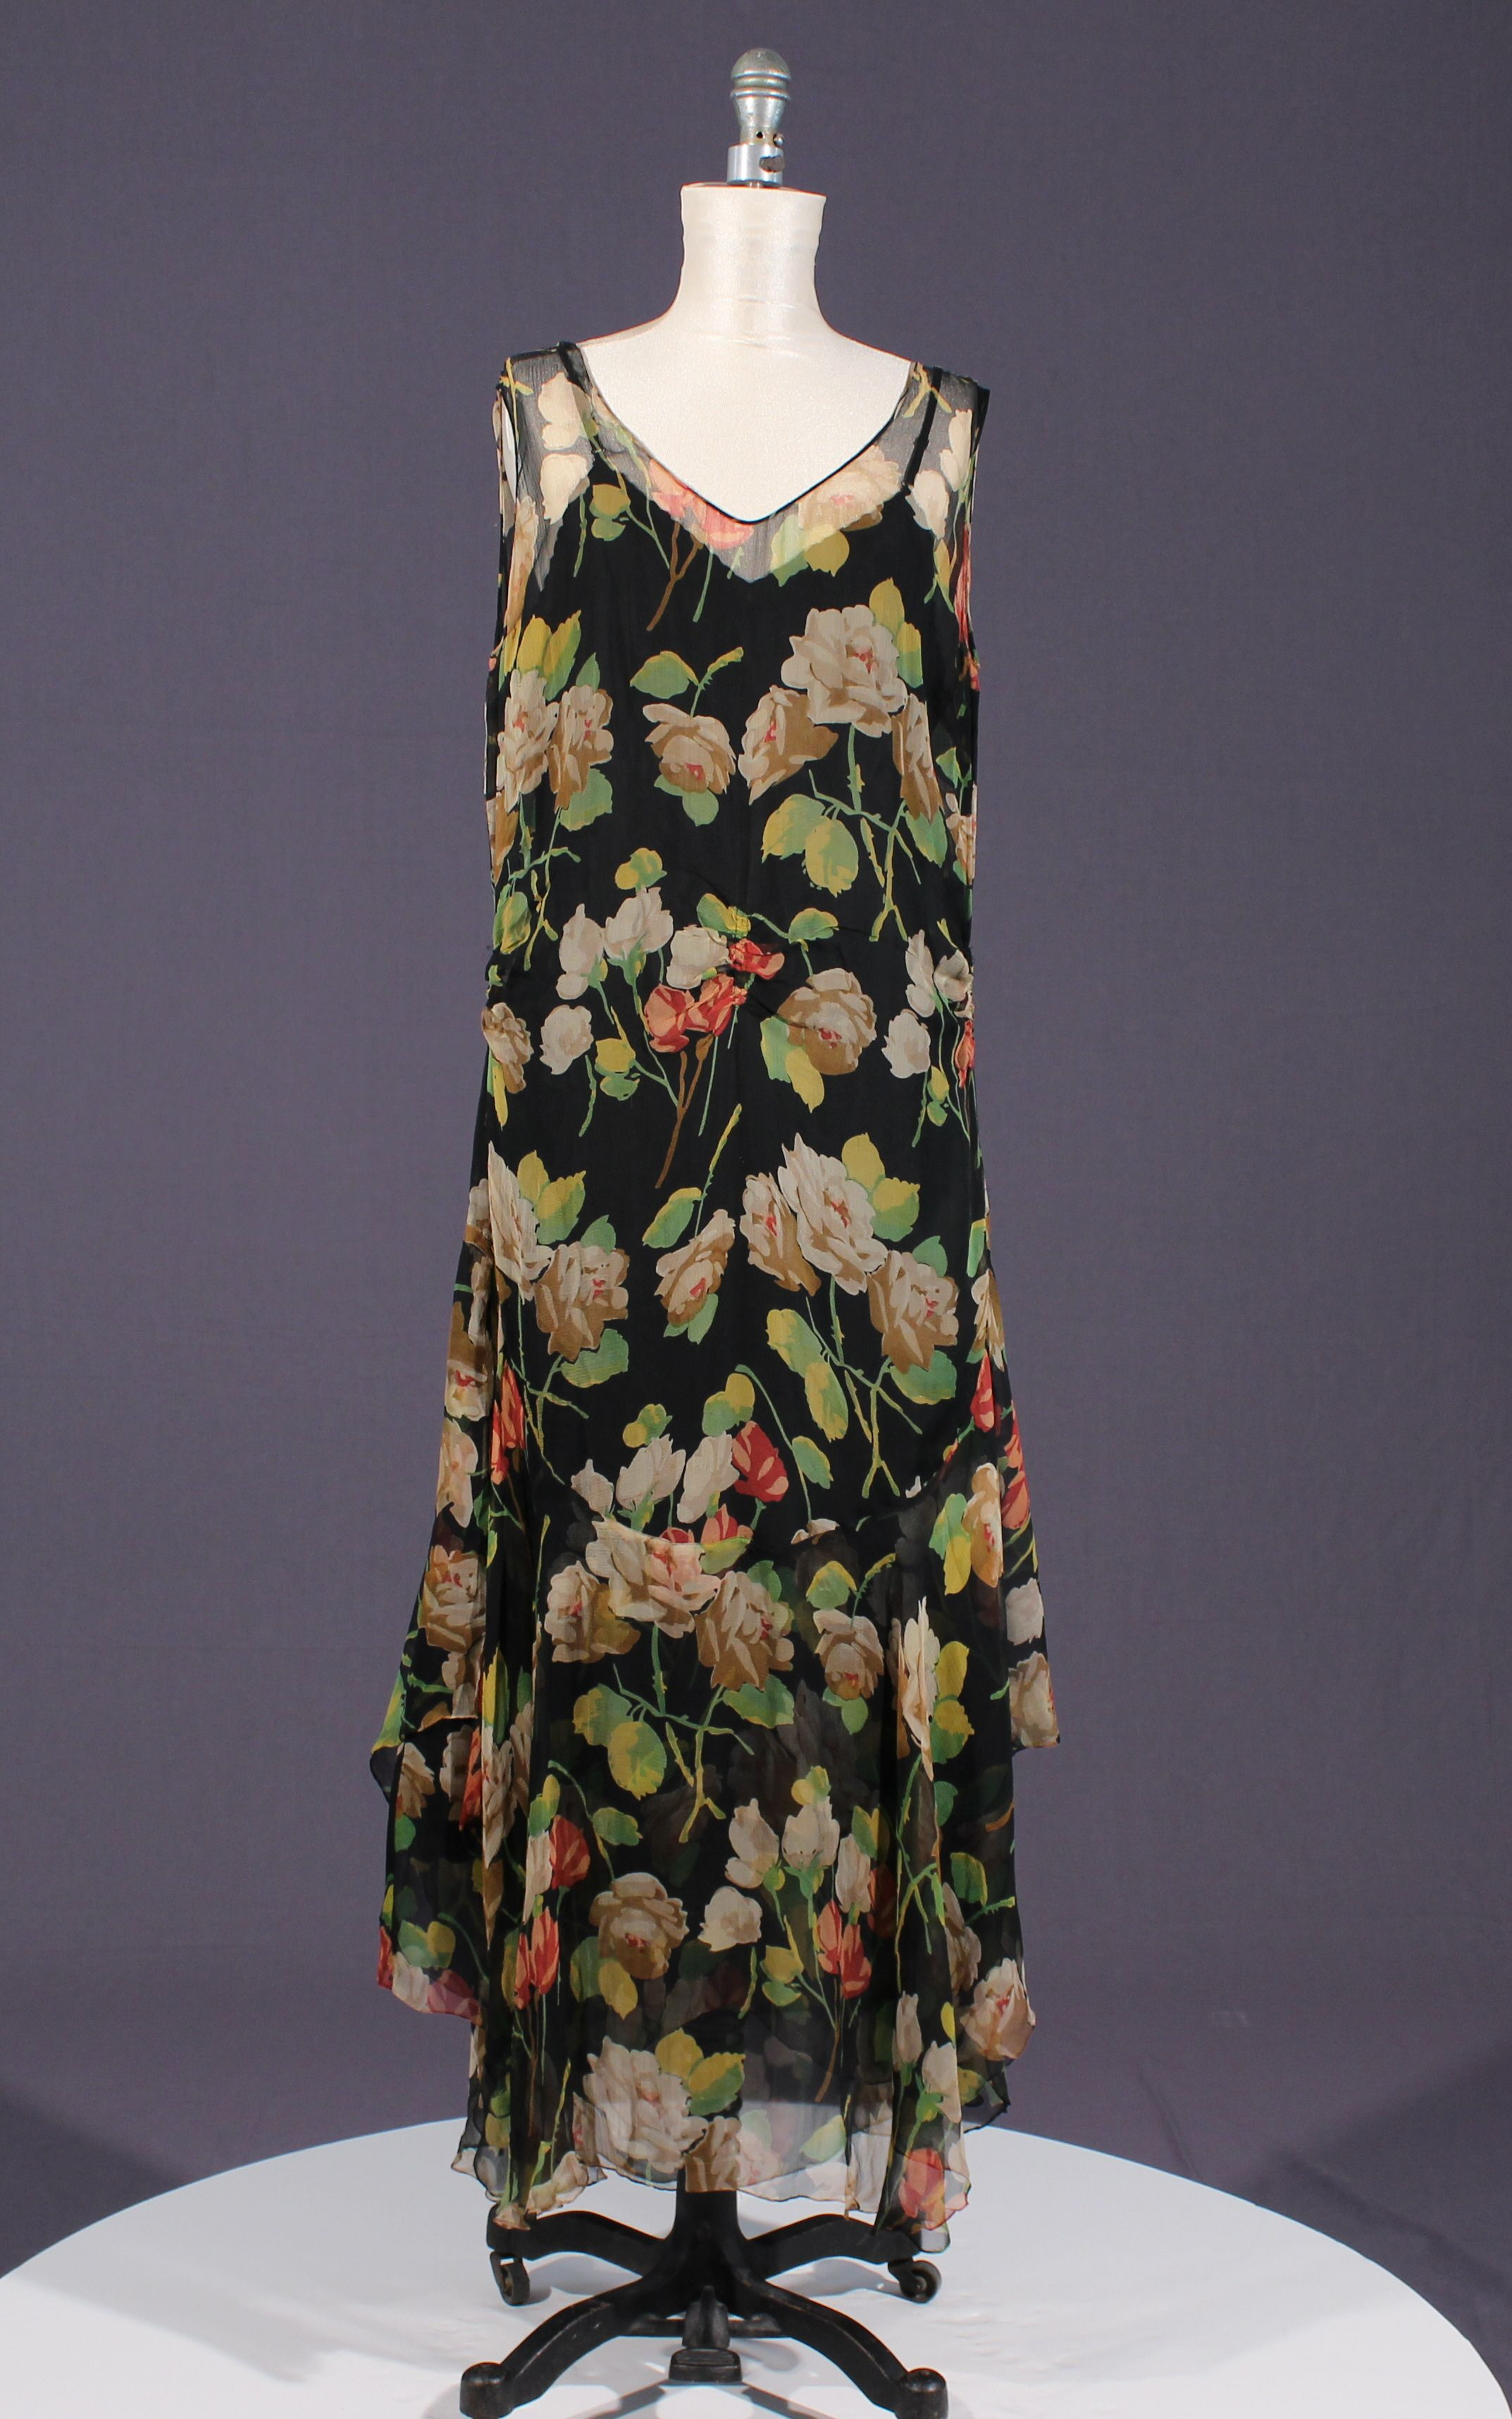 1920 lace dress  rose printed chiffon s dress  The Roaring Twenties  Pinterest